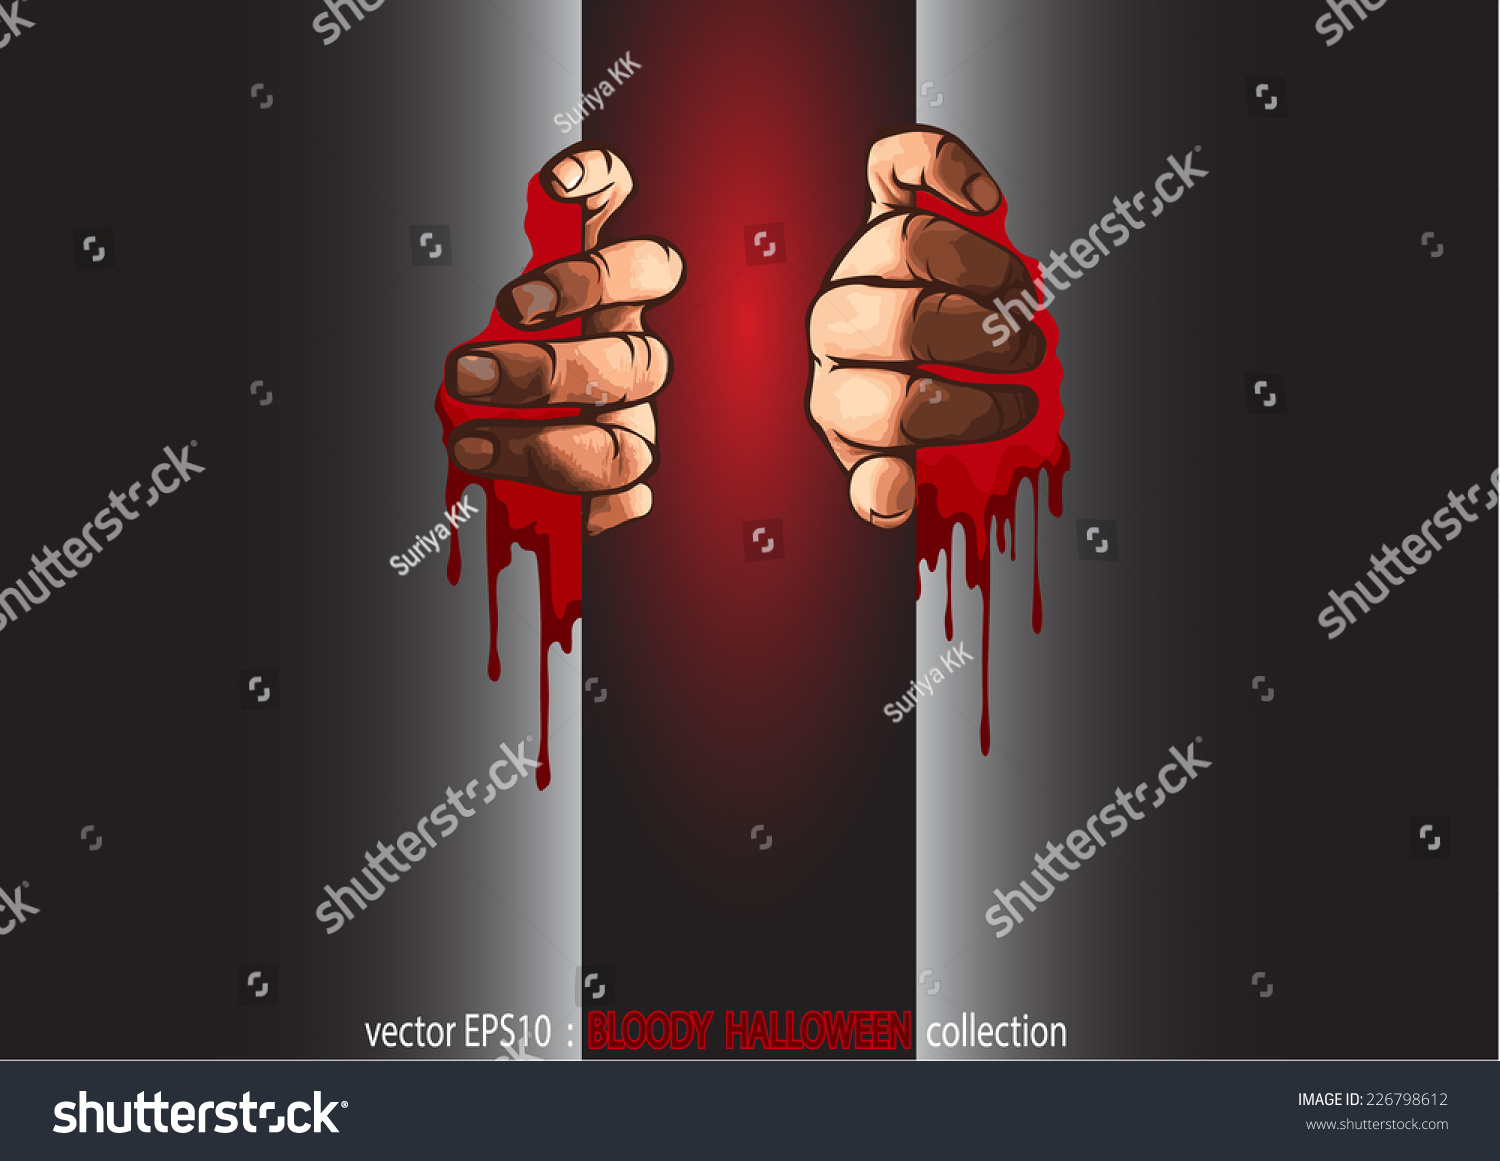 vector eps 10 halloween collection two hands stock vector (royalty